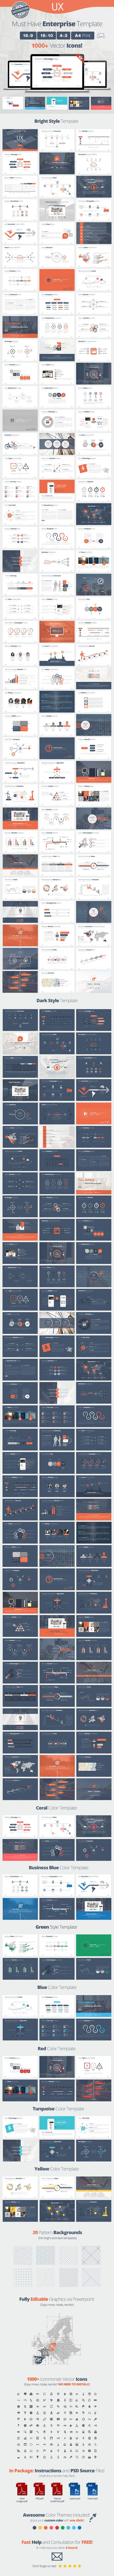 UX Enterprise Powerpoint Presentation Template #powerpoint #powerpointtemplate #presentation Download: http://graphicriver.net/item/ux-enterprise-powerpoint-presentation-template/11956708?ref=ksioks